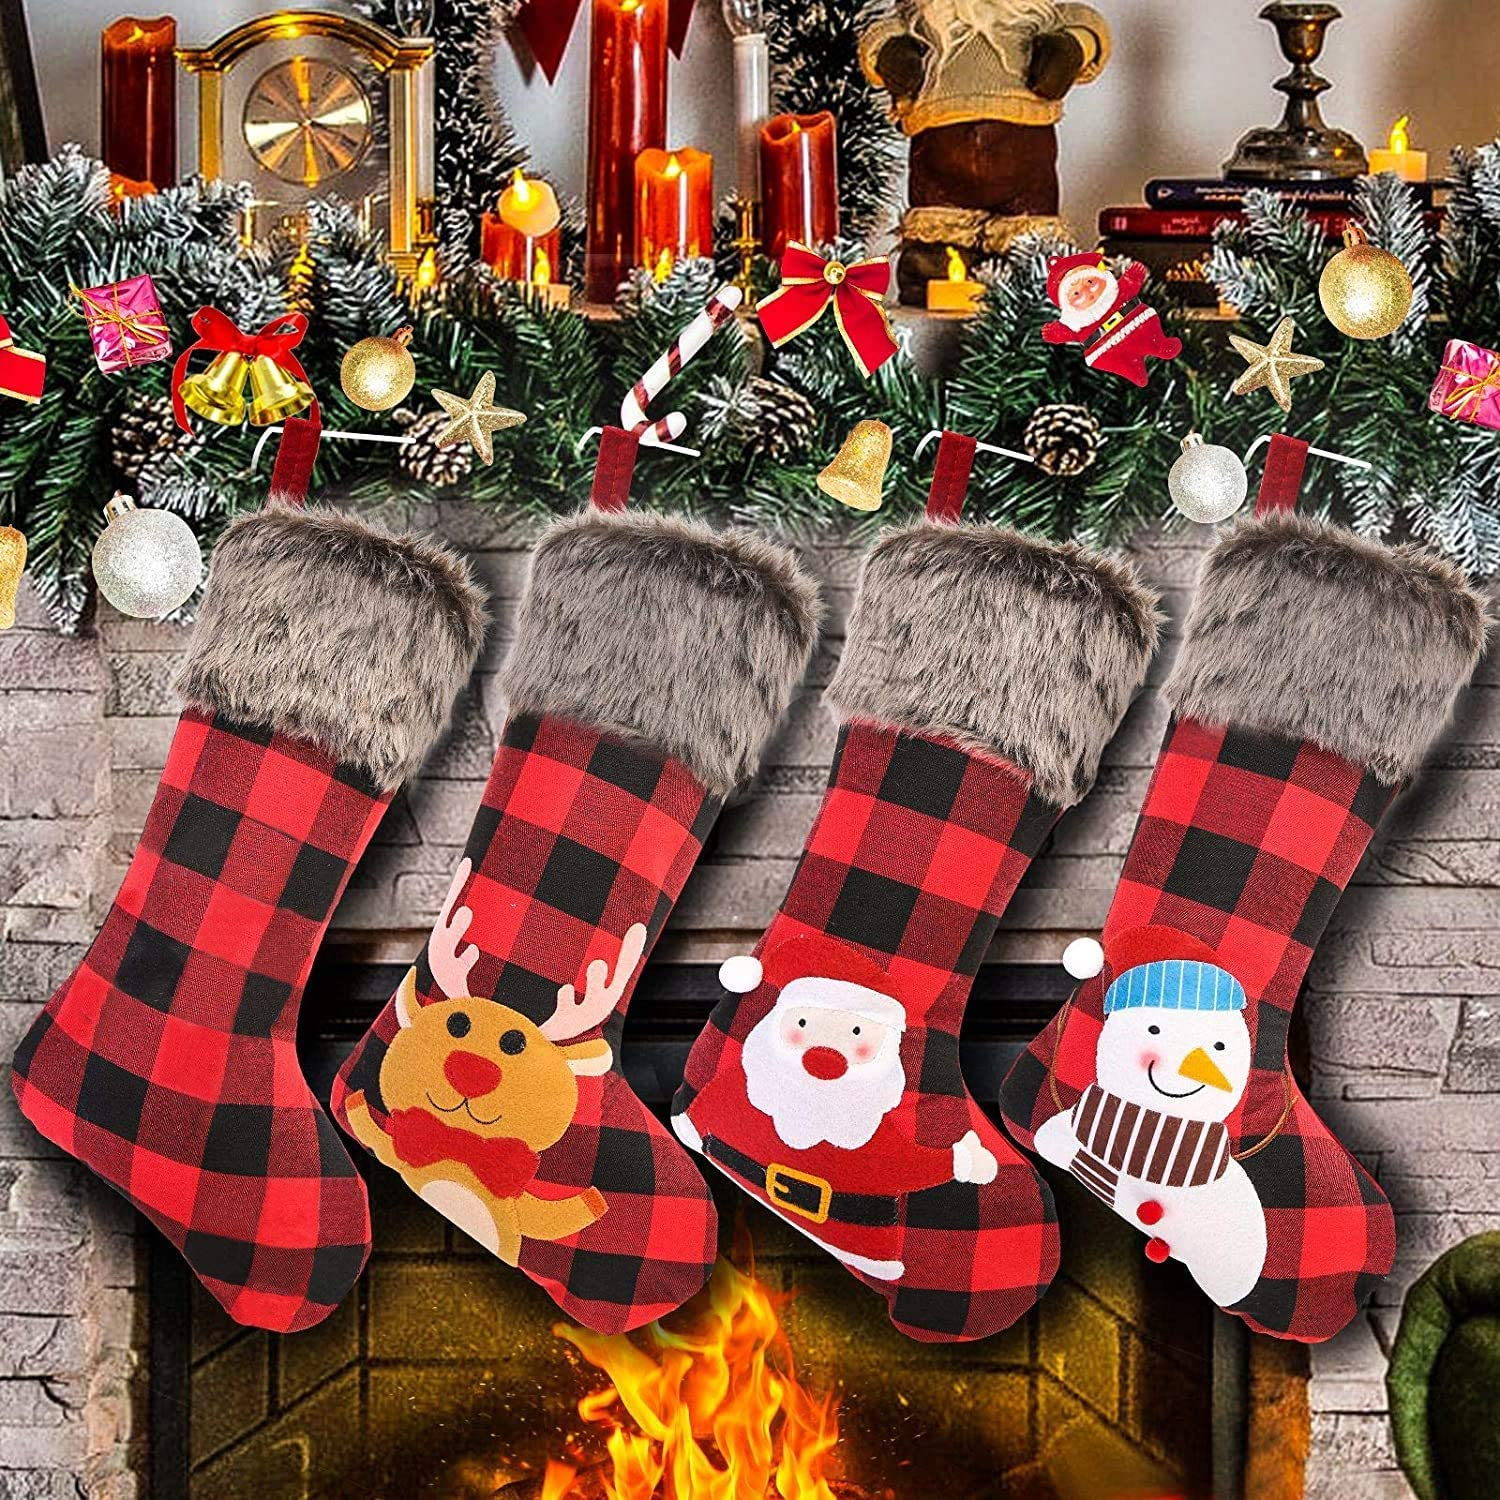 Aitsite Christmas Stockings 4 Pack 18 Big Xmas Stockings Burlap Plaid Style with Snowflake Santa Snowman Reindeer and Plush Faux Fur Cuff Family Pack Stockings for Xmas Holiday Party Decor